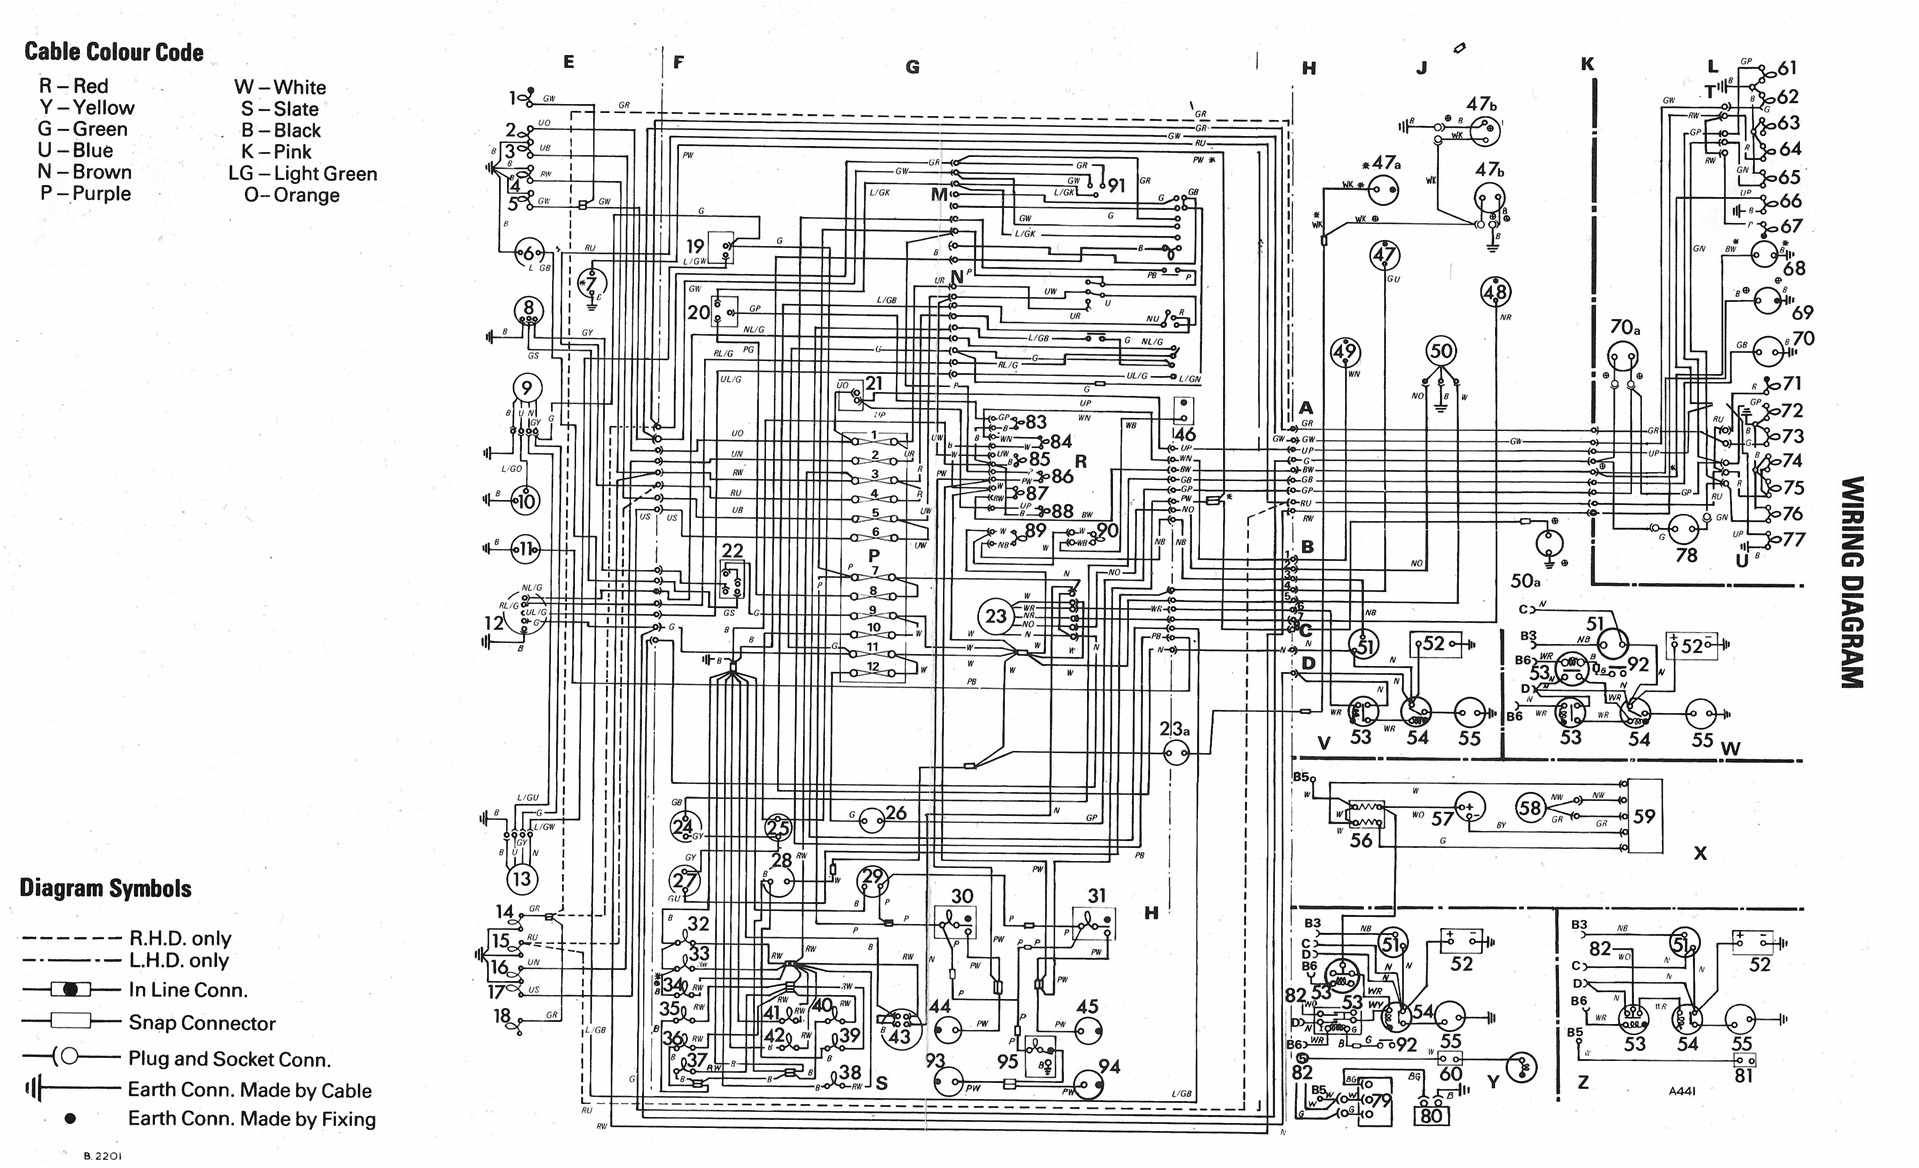 Electrical Wiring Diagram Of Volkswagen Golf Mk1 Vw Up Volkswagen Golf Mk1 Vw Golf